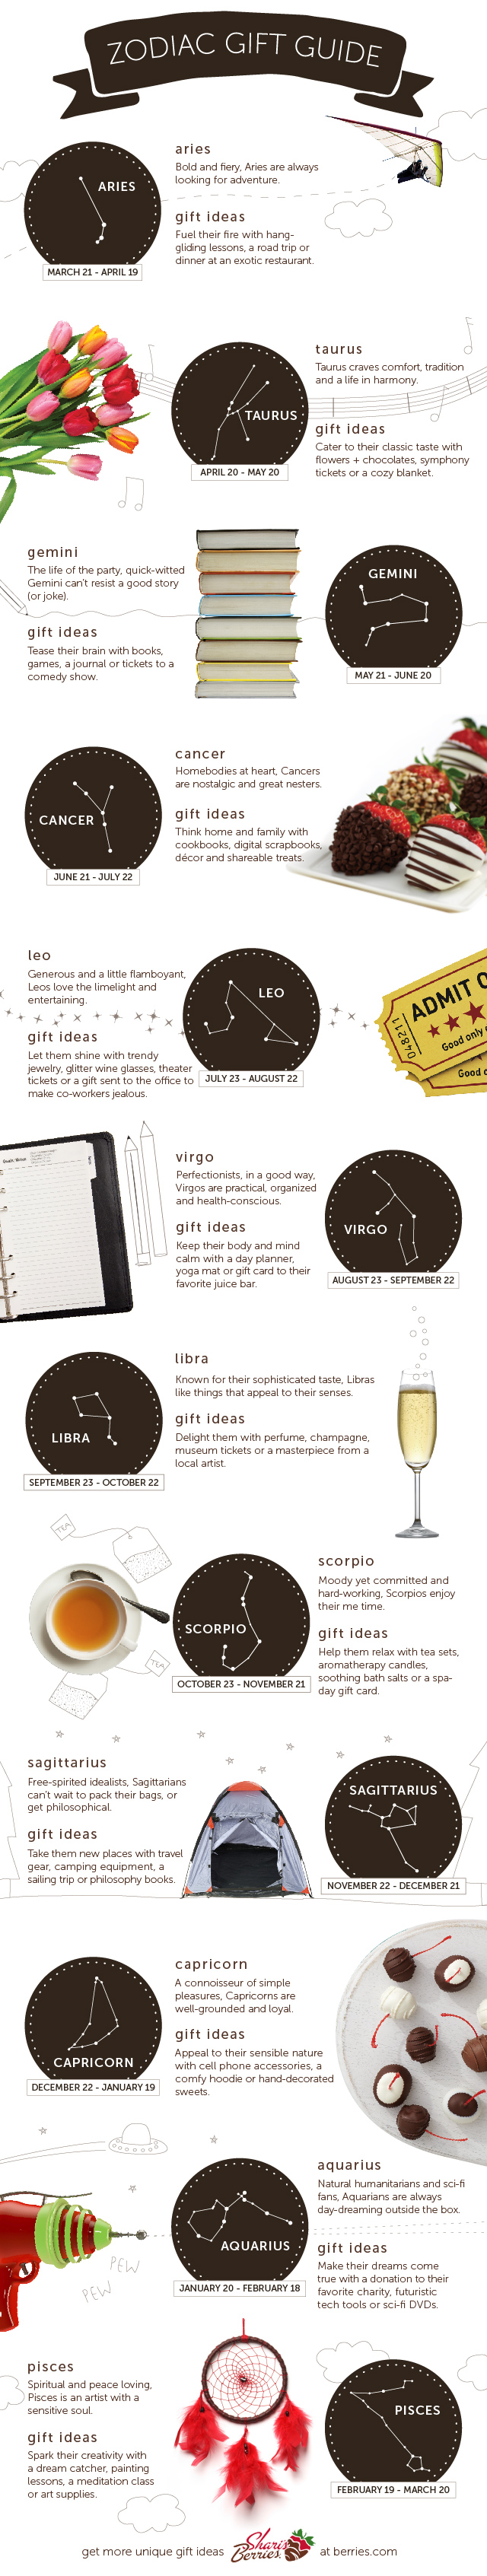 Zodiac Sign Gift Guide